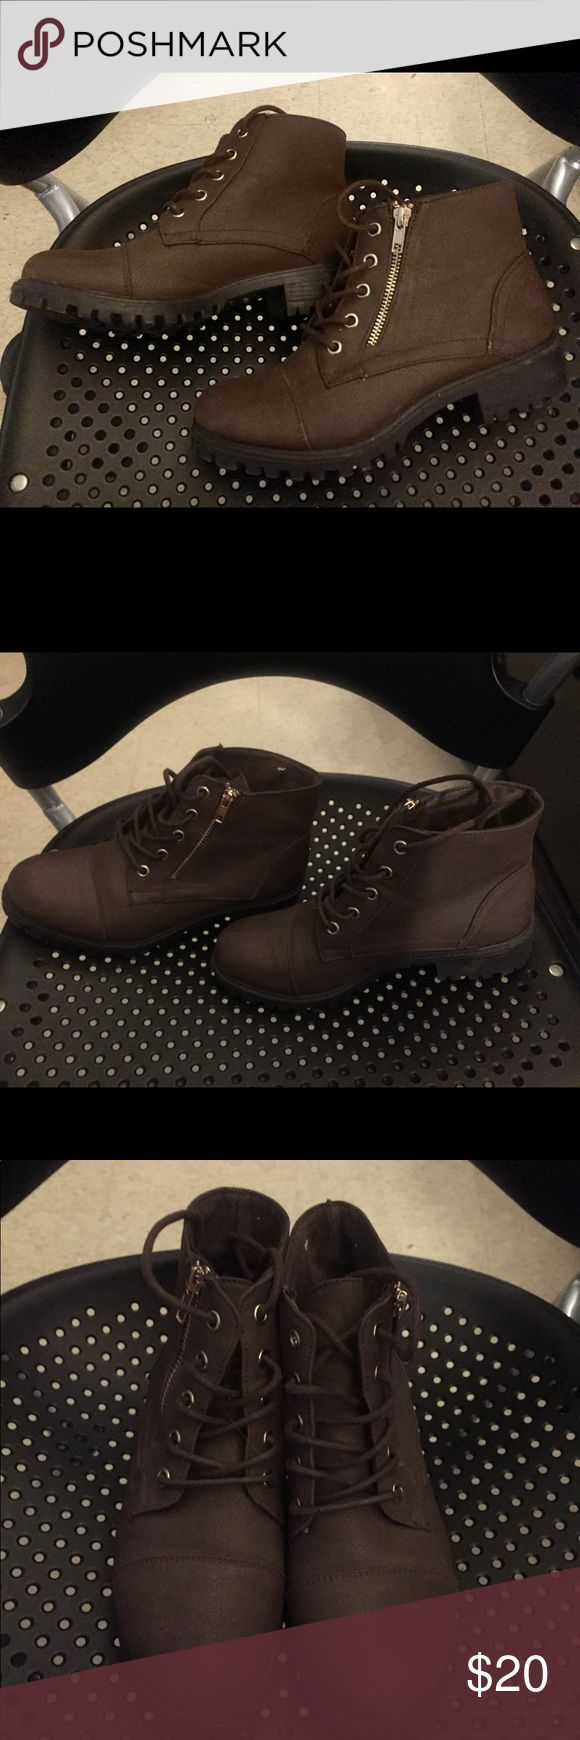 Primark Boots Womens Brown Size 7 Primark Boots Womens  Color: Brown  Size: 7 primark Shoes Winter & Rain Boots